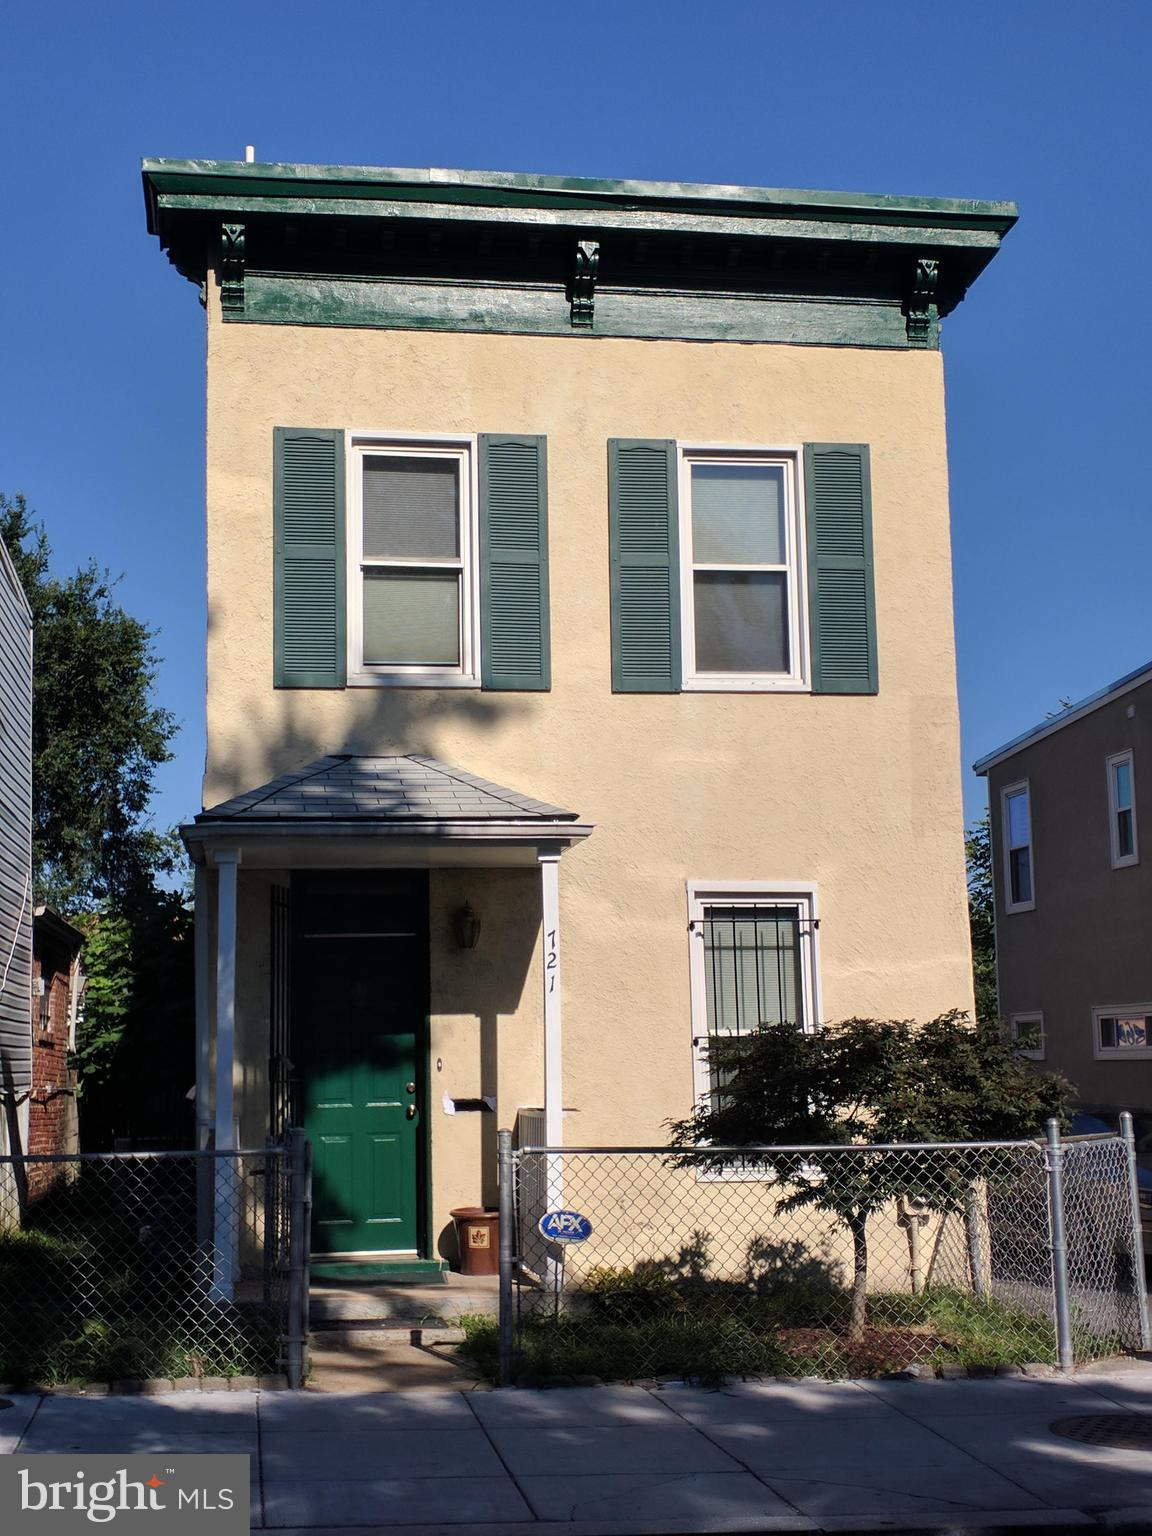 Huge detached home near H Street Corridor, in need of some repairs to make it shine again or could b